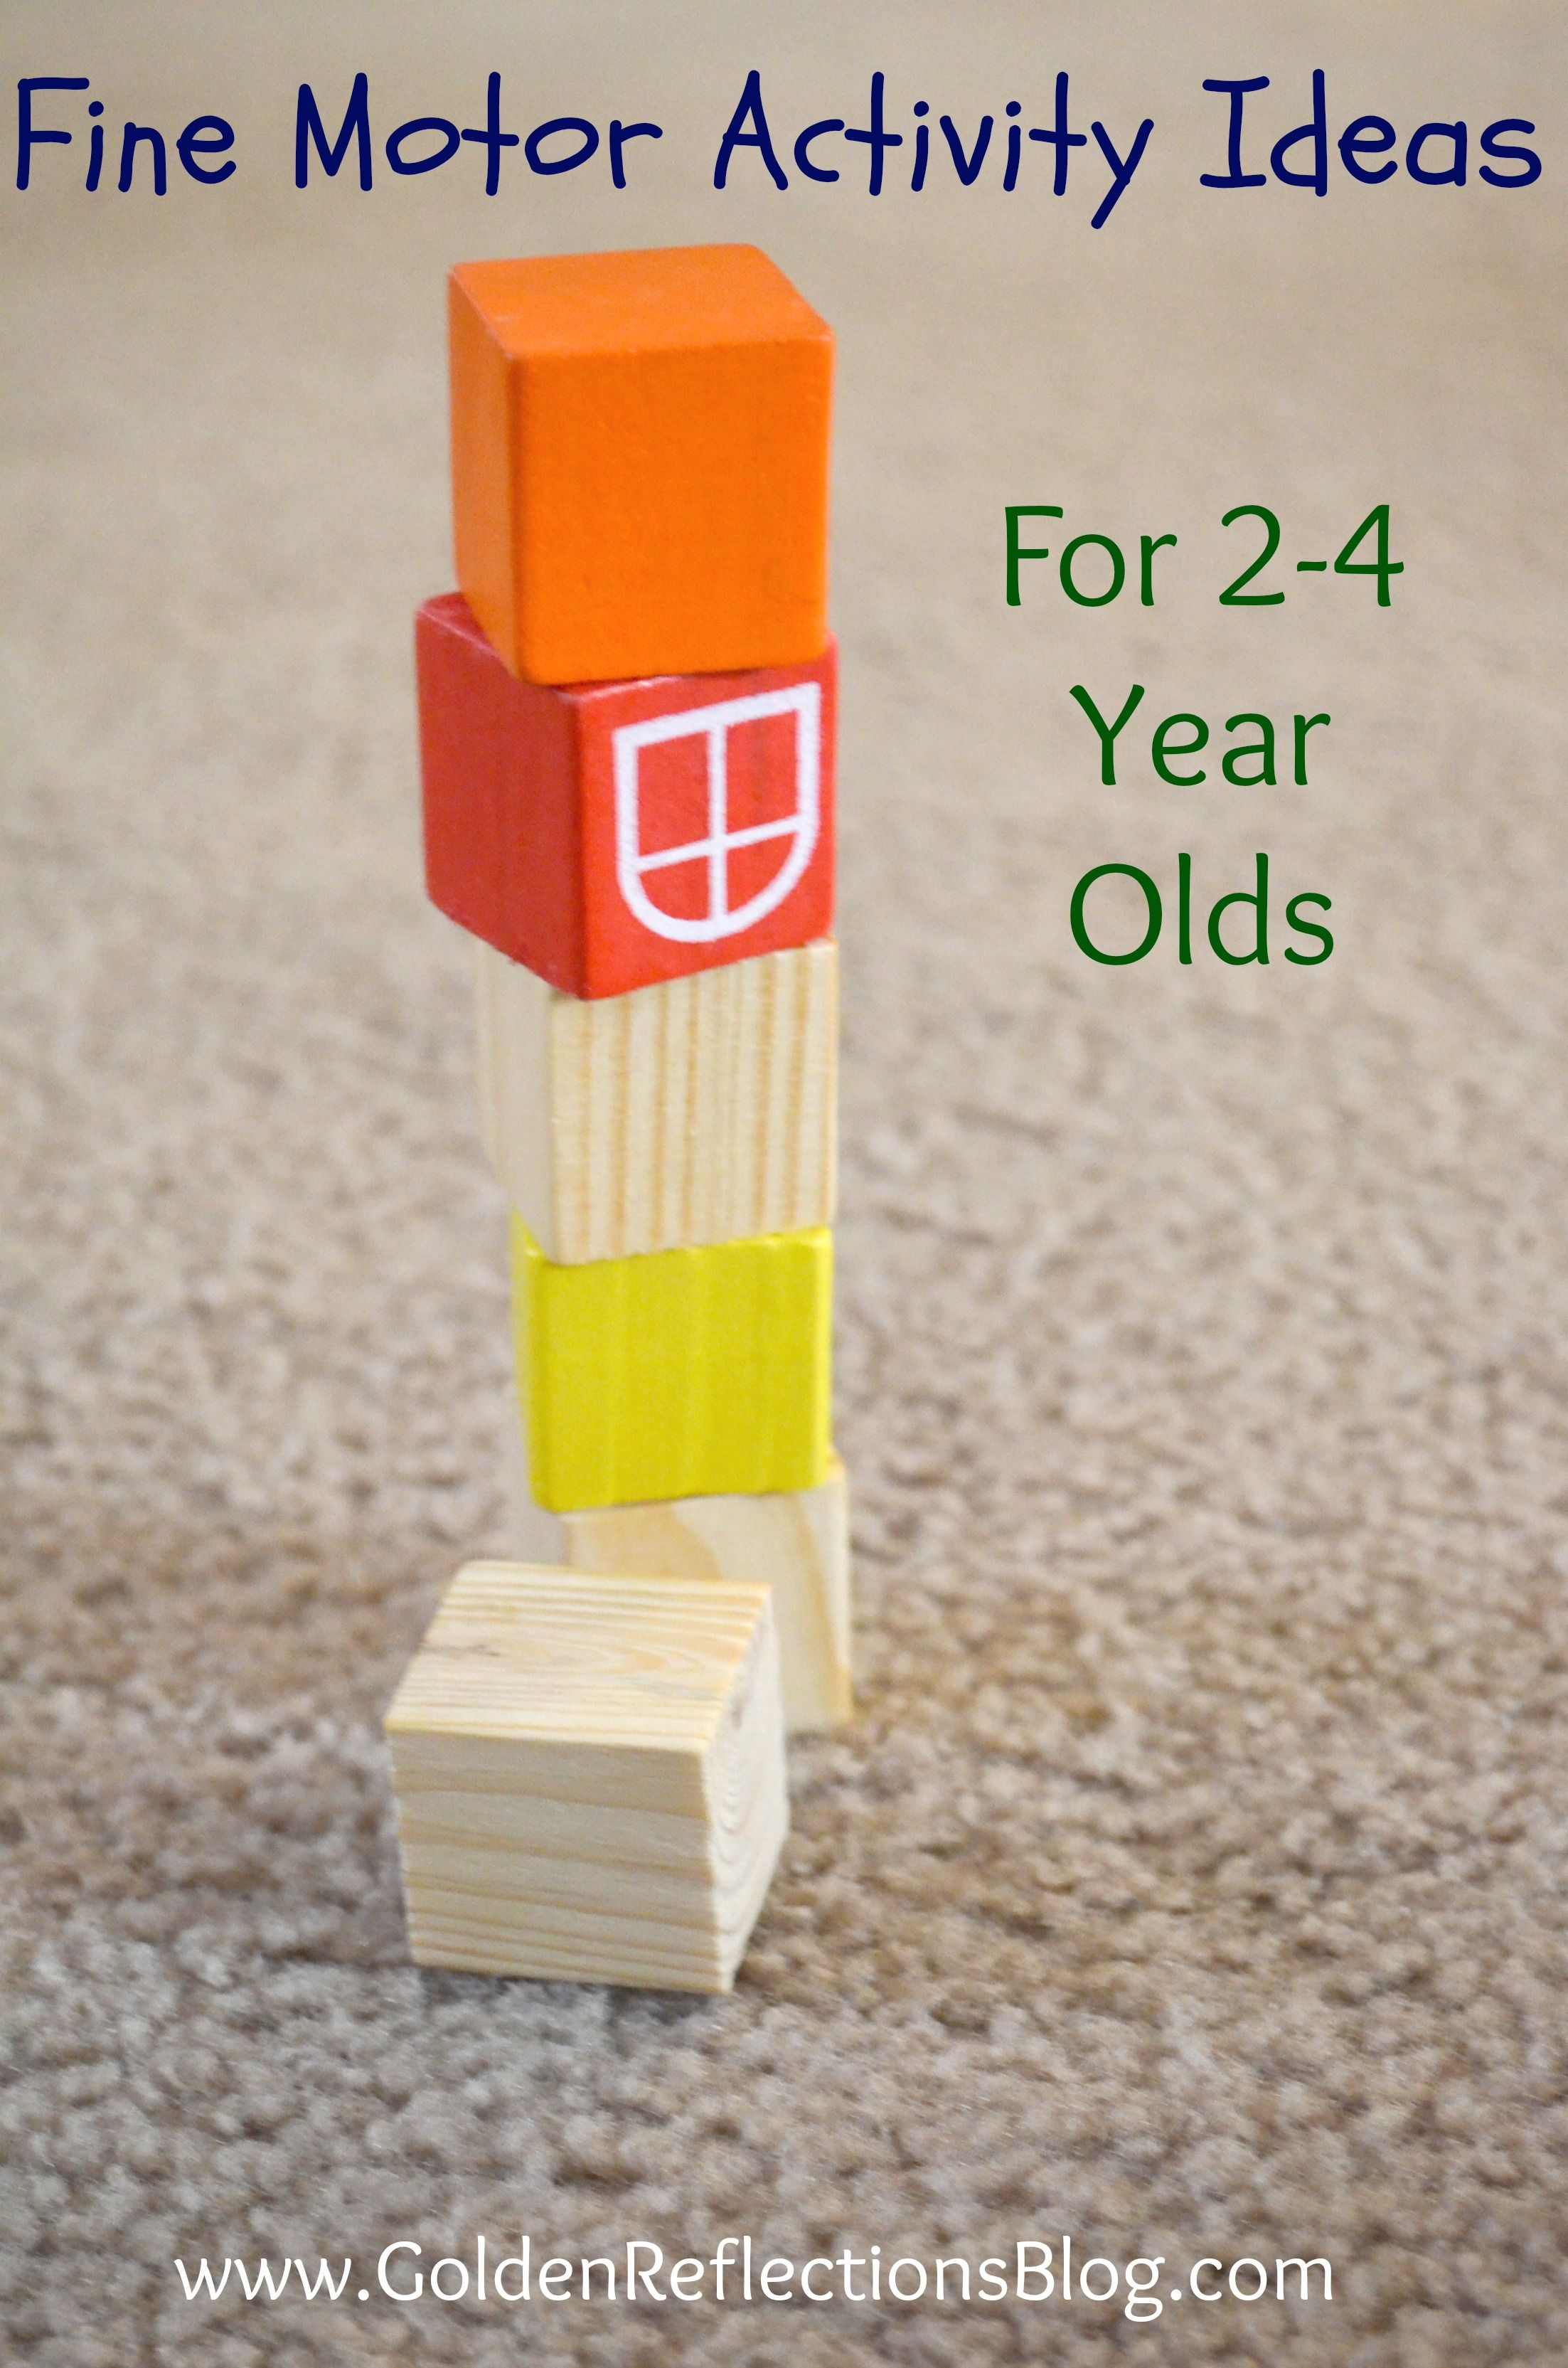 Fine Motor Activity Ideas for 2-4 Year Olds | www.GoldenReflectionsBlog.com